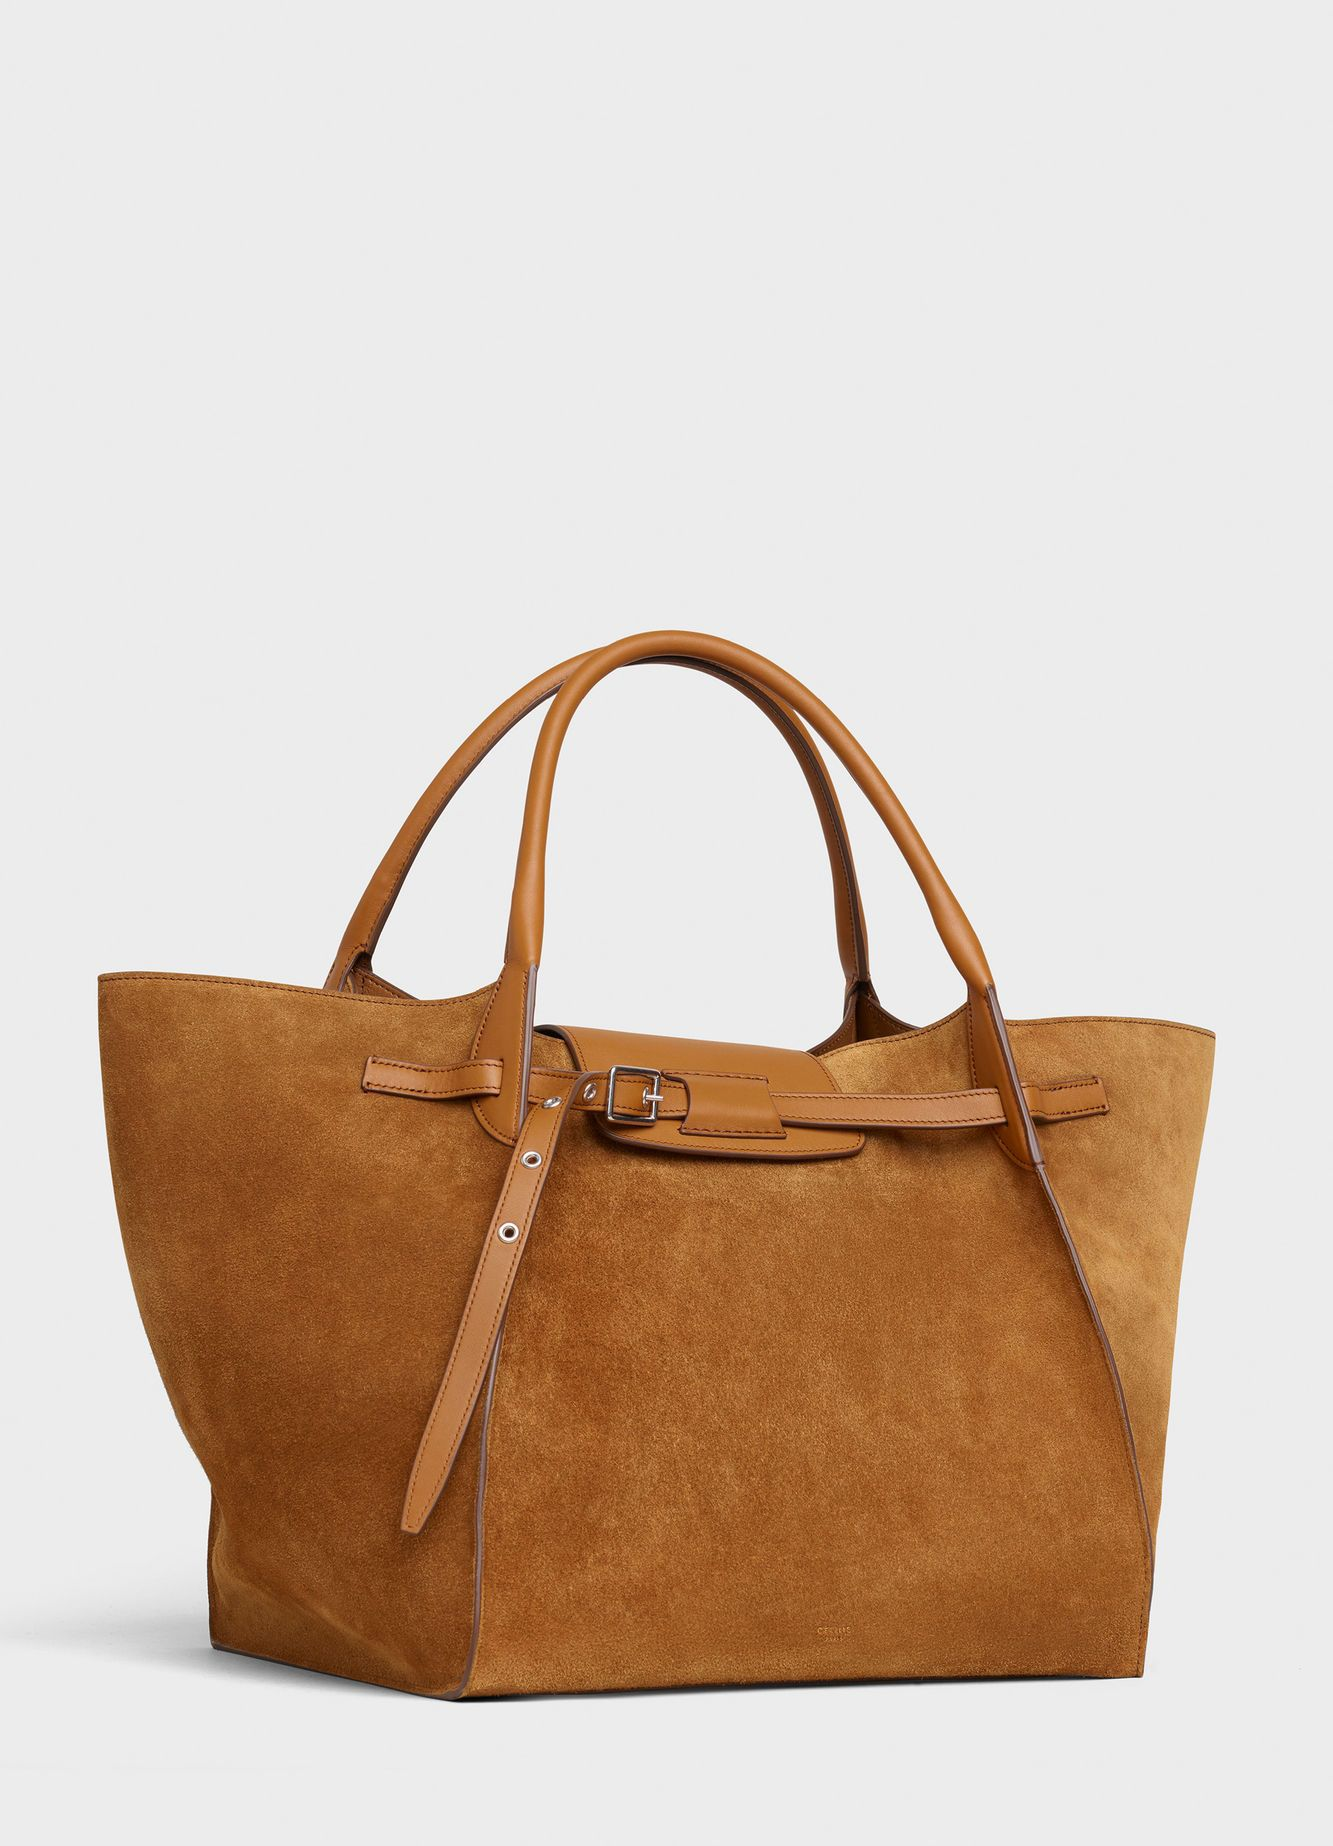 eb02c57a8 Medium Big Bag in suede calfskin - Camel - Official website | CELINE -  Official website